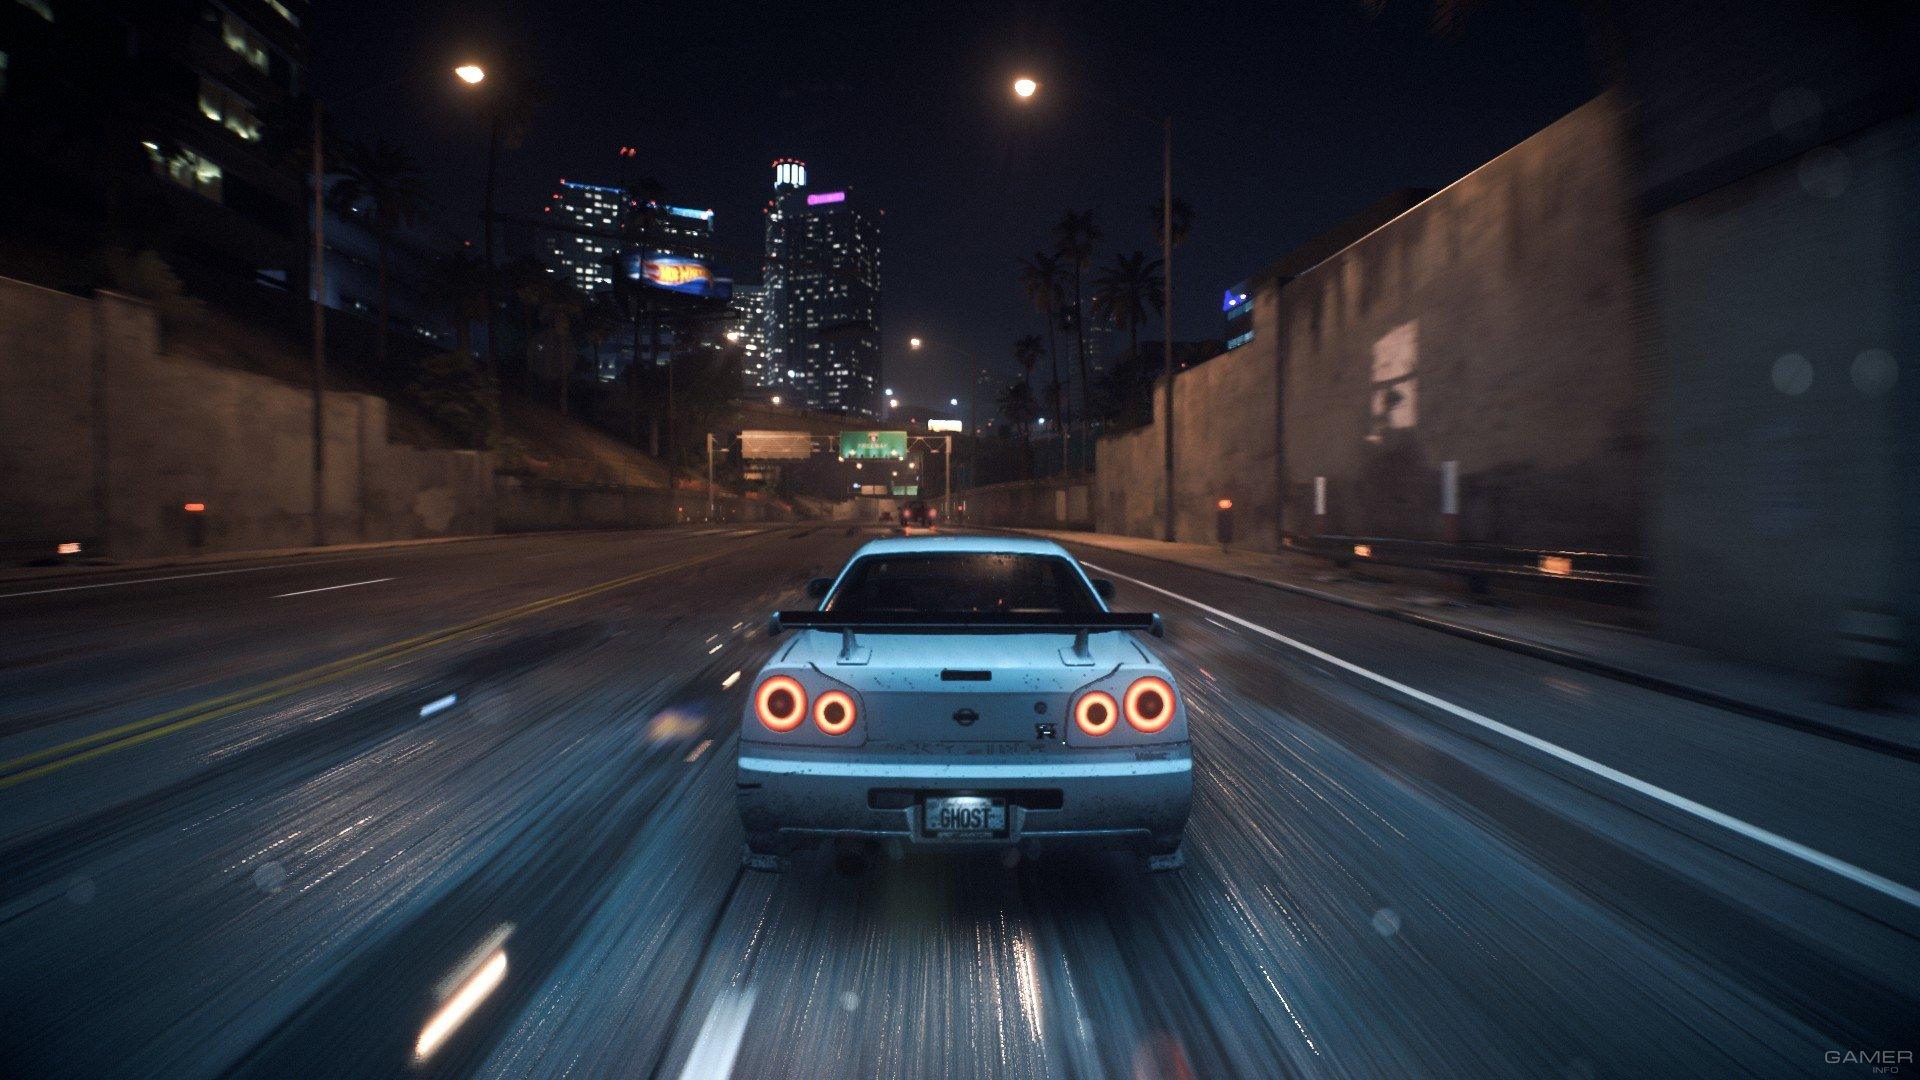 Need for Speed (2015 video game)